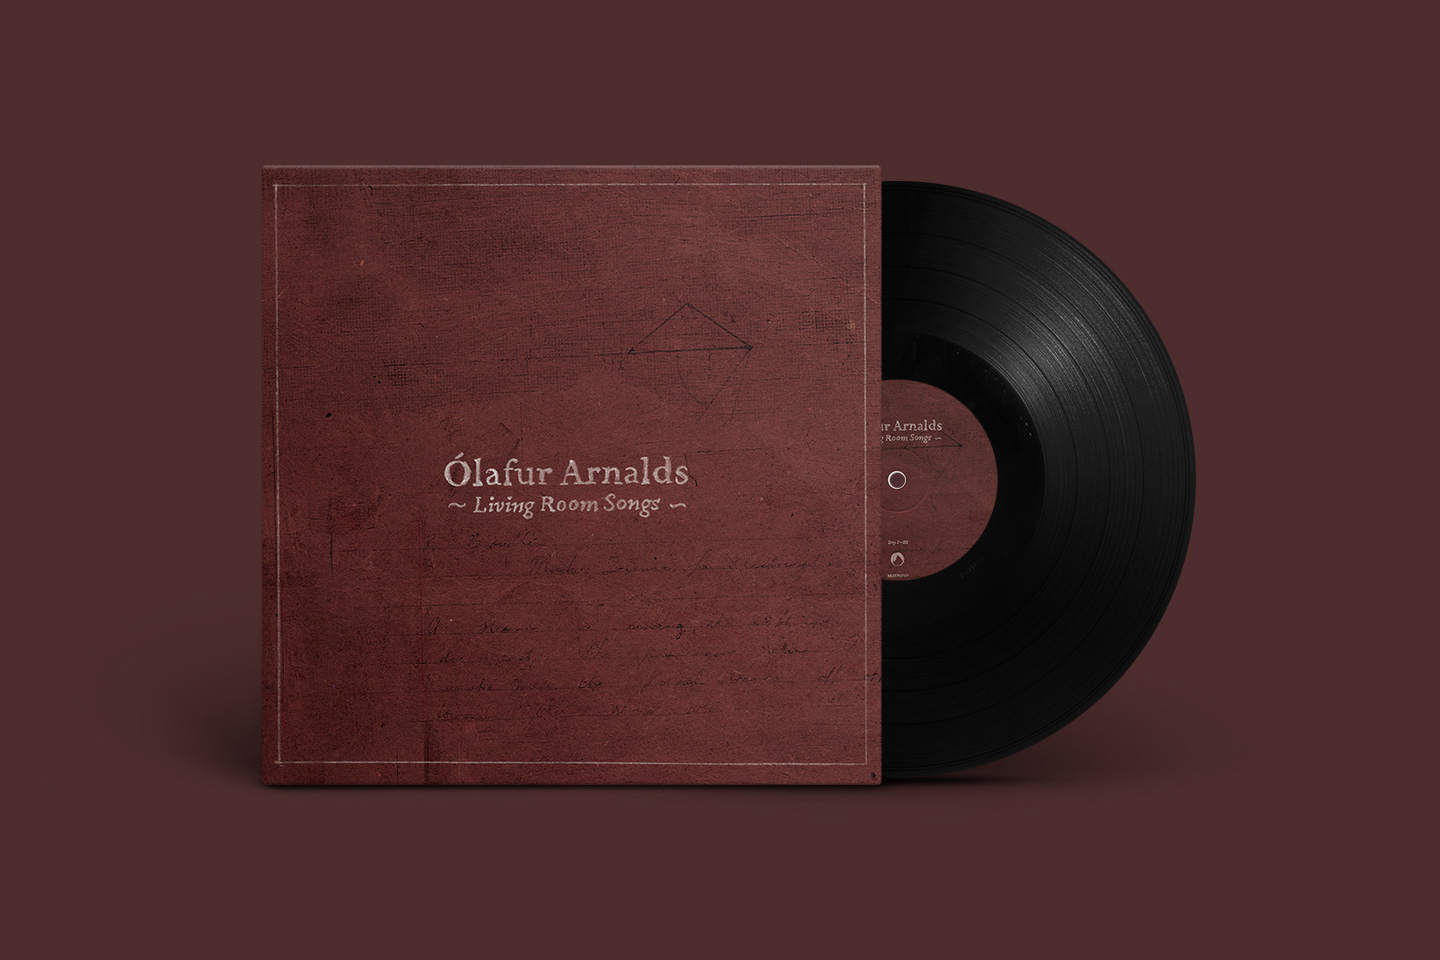 Living room songs by lafur arnalds releases erased tapes for Olafur arnalds living room songs vinyl